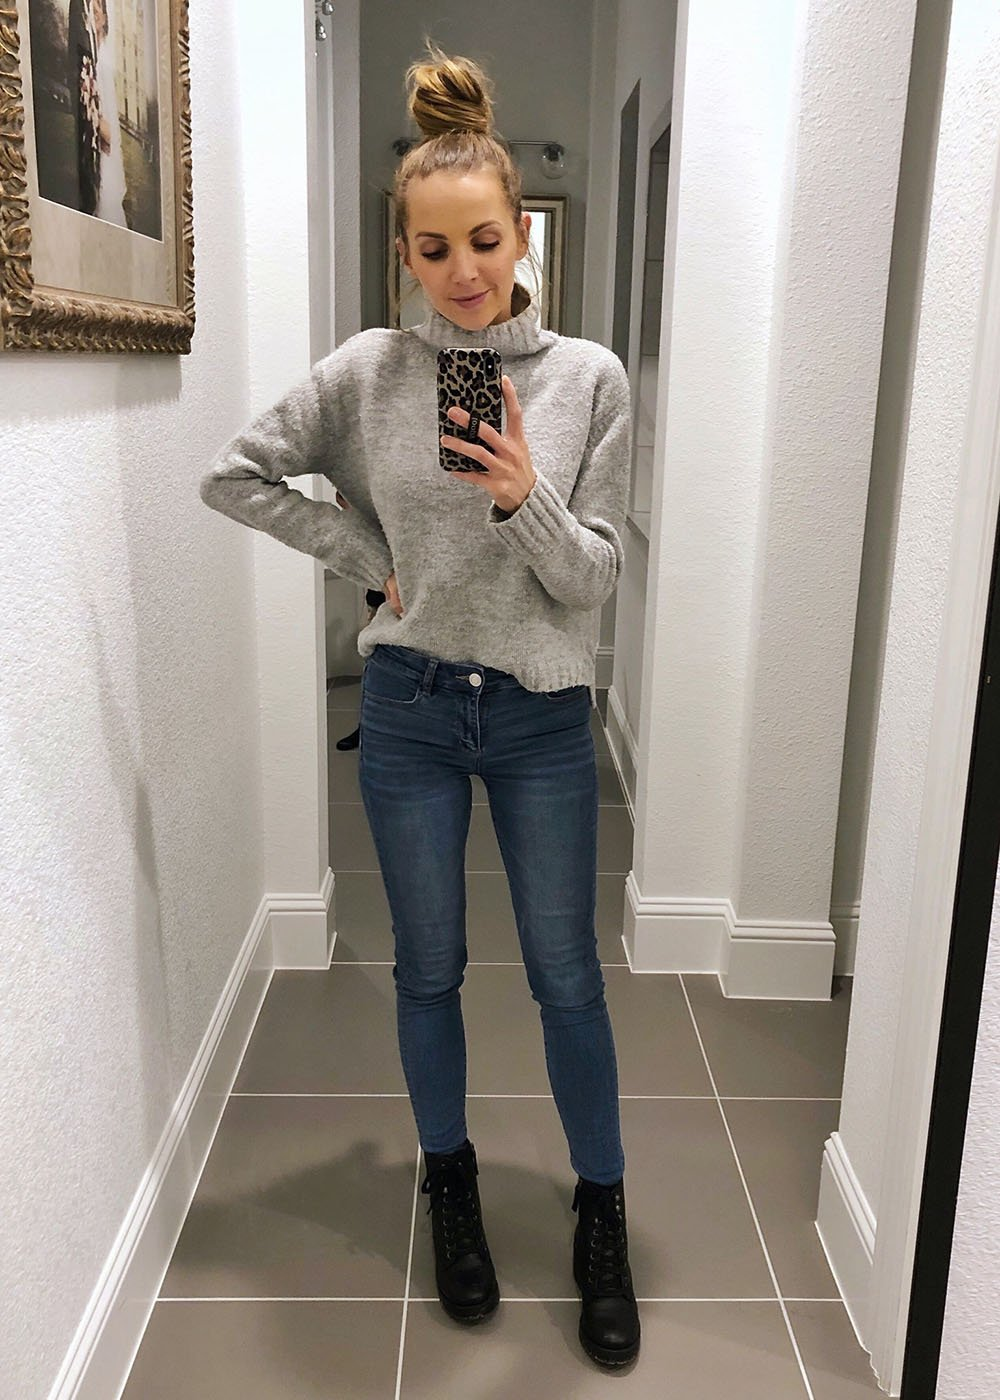 Gray turtleneck and jeans